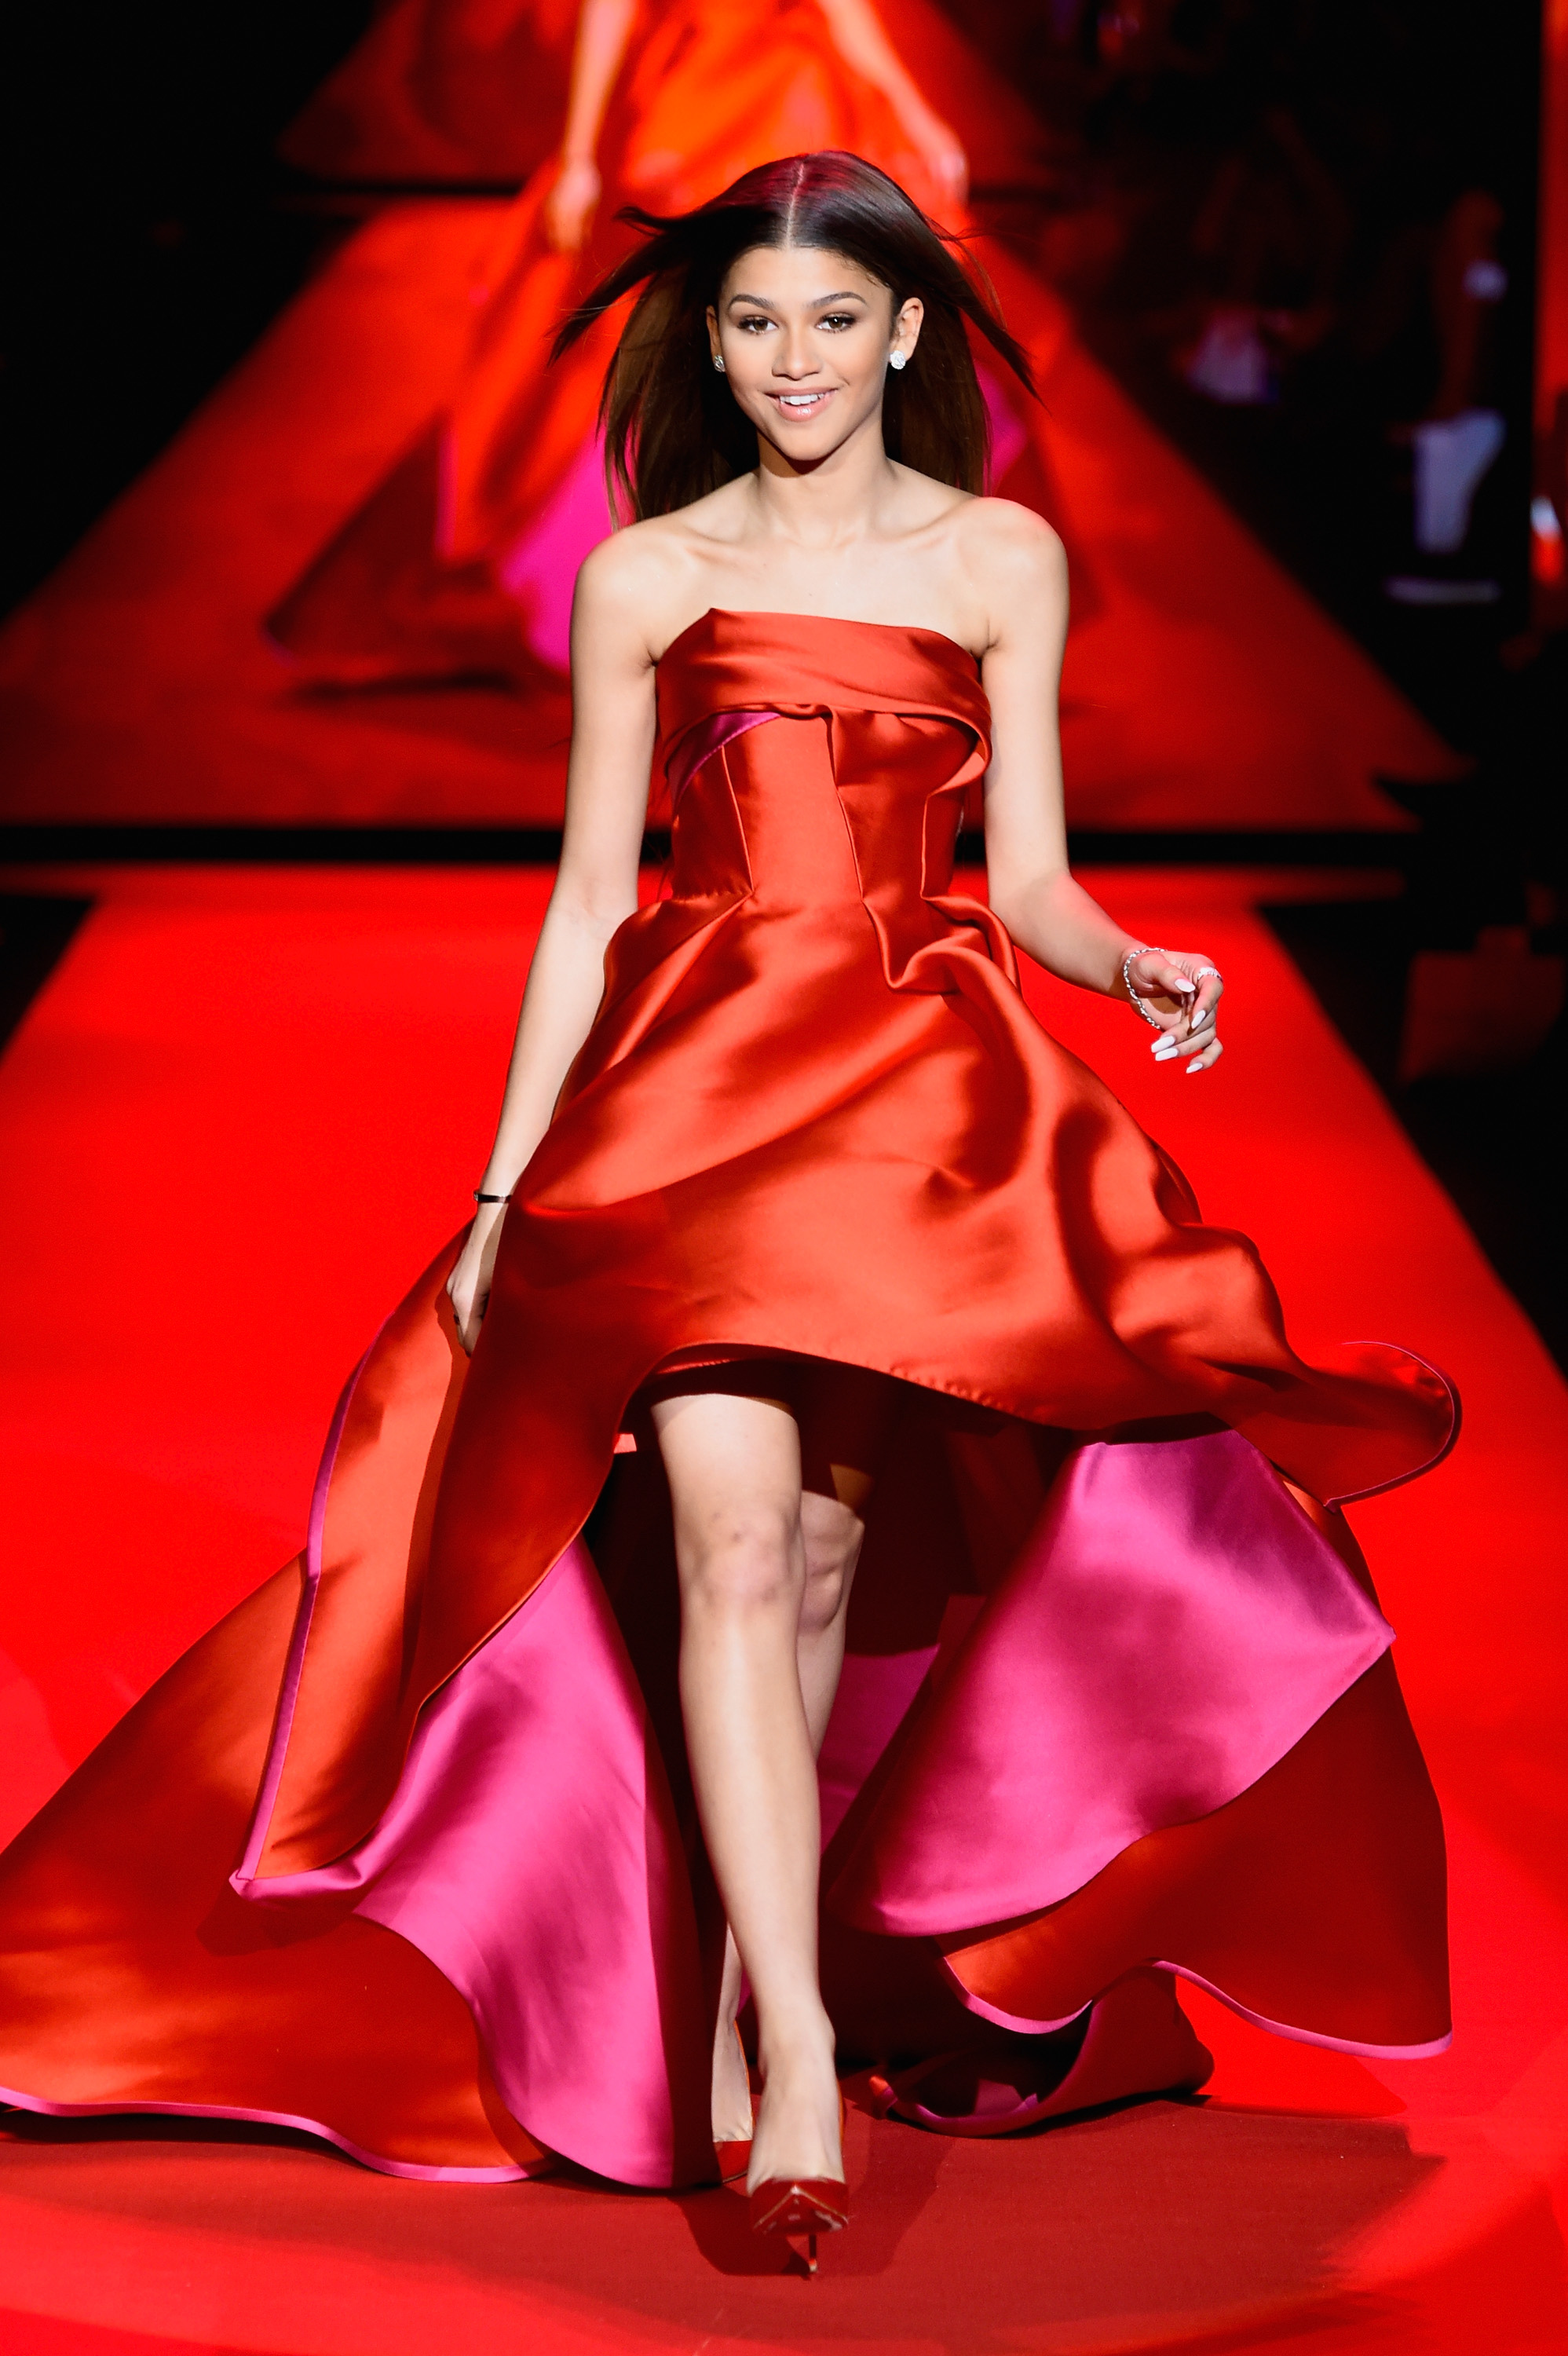 Go Red For Women 2015 Fashion Show